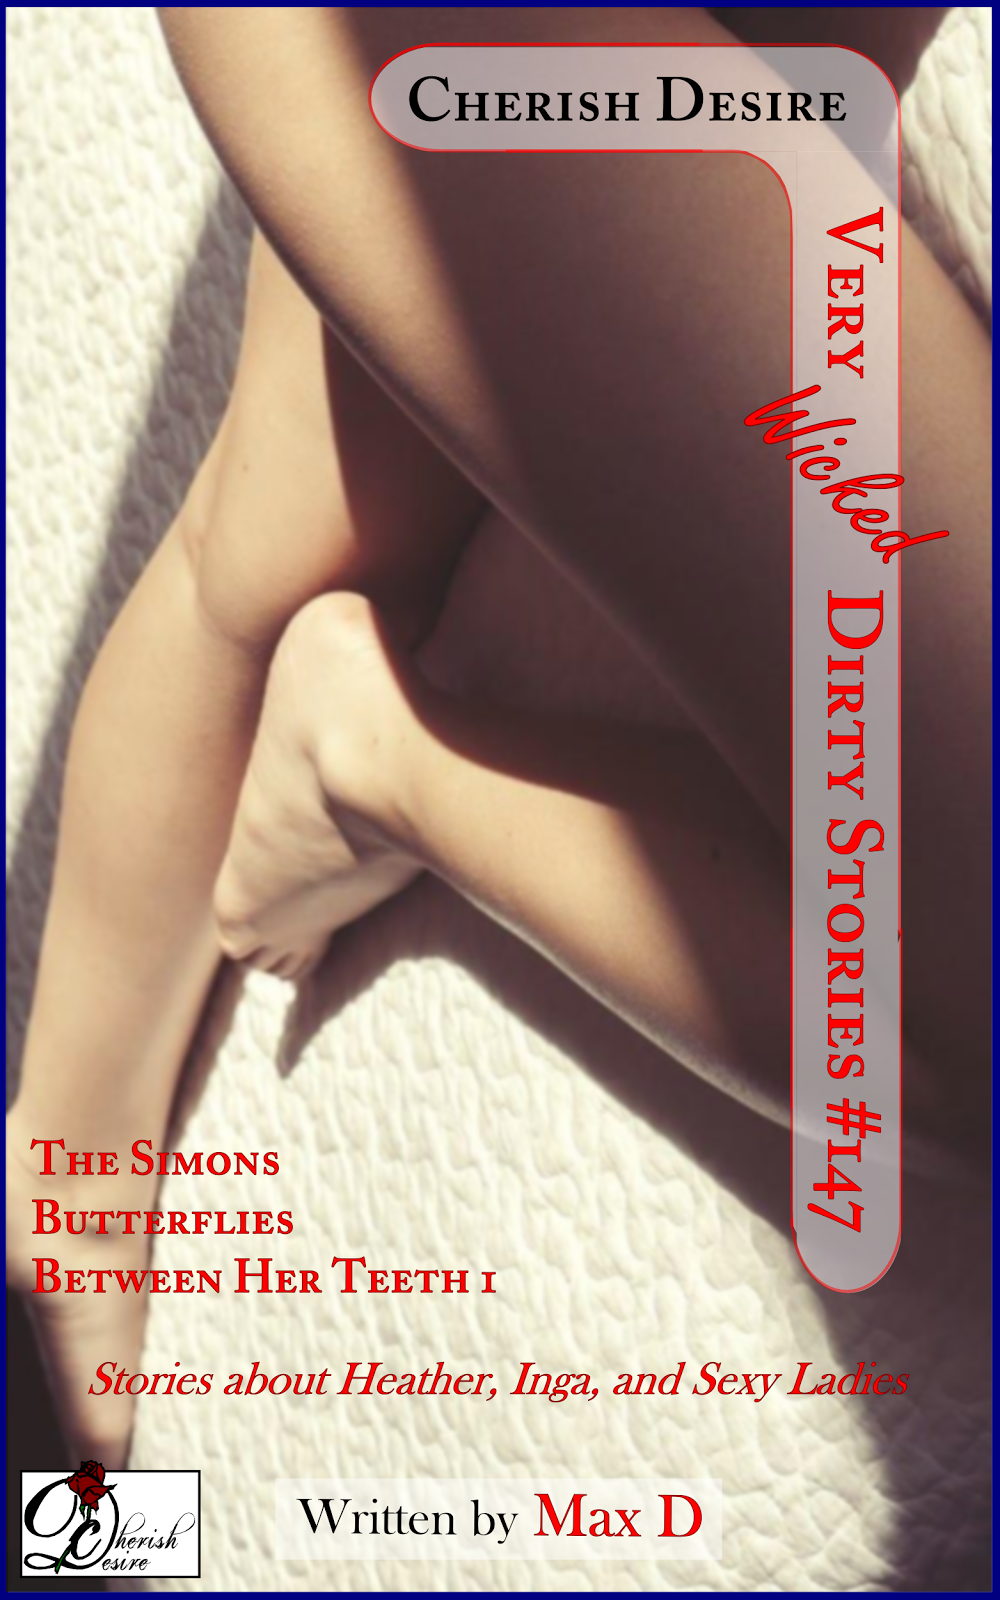 Cherish Desire: Very Wicked Dirty Stories #147, Max D, erotica